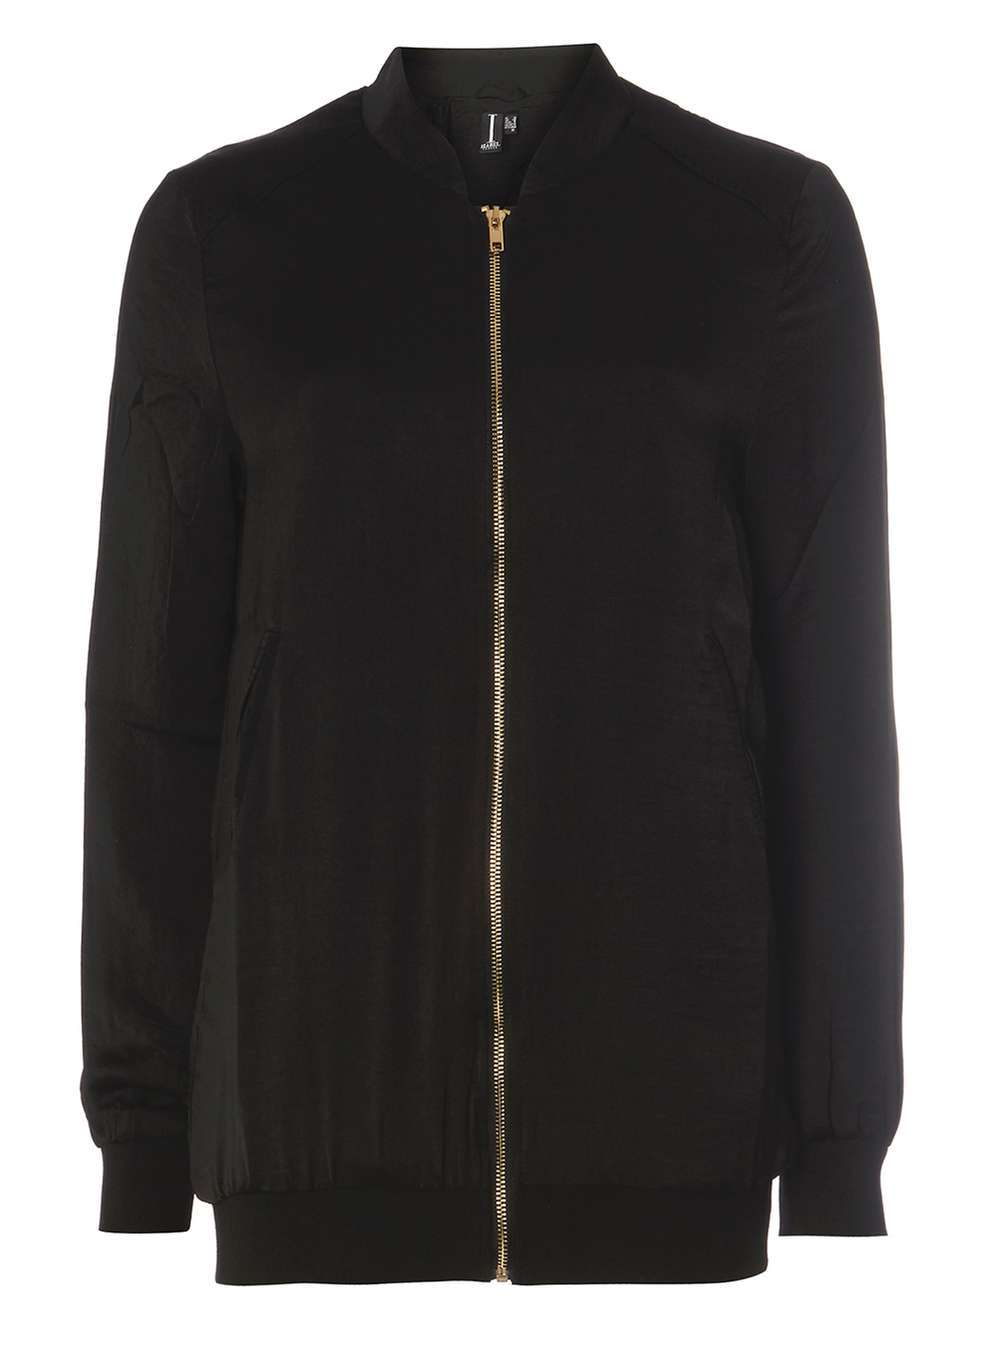 Womens **Izabel London Black Sateen Bomber Jacket Black - pattern: plain; collar: round collar/collarless; style: bomber; predominant colour: black; occasions: casual, creative work; length: standard; fit: straight cut (boxy); fibres: polyester/polyamide - 100%; sleeve length: long sleeve; sleeve style: standard; texture group: crepes; collar break: high; pattern type: fabric; season: a/w 2016